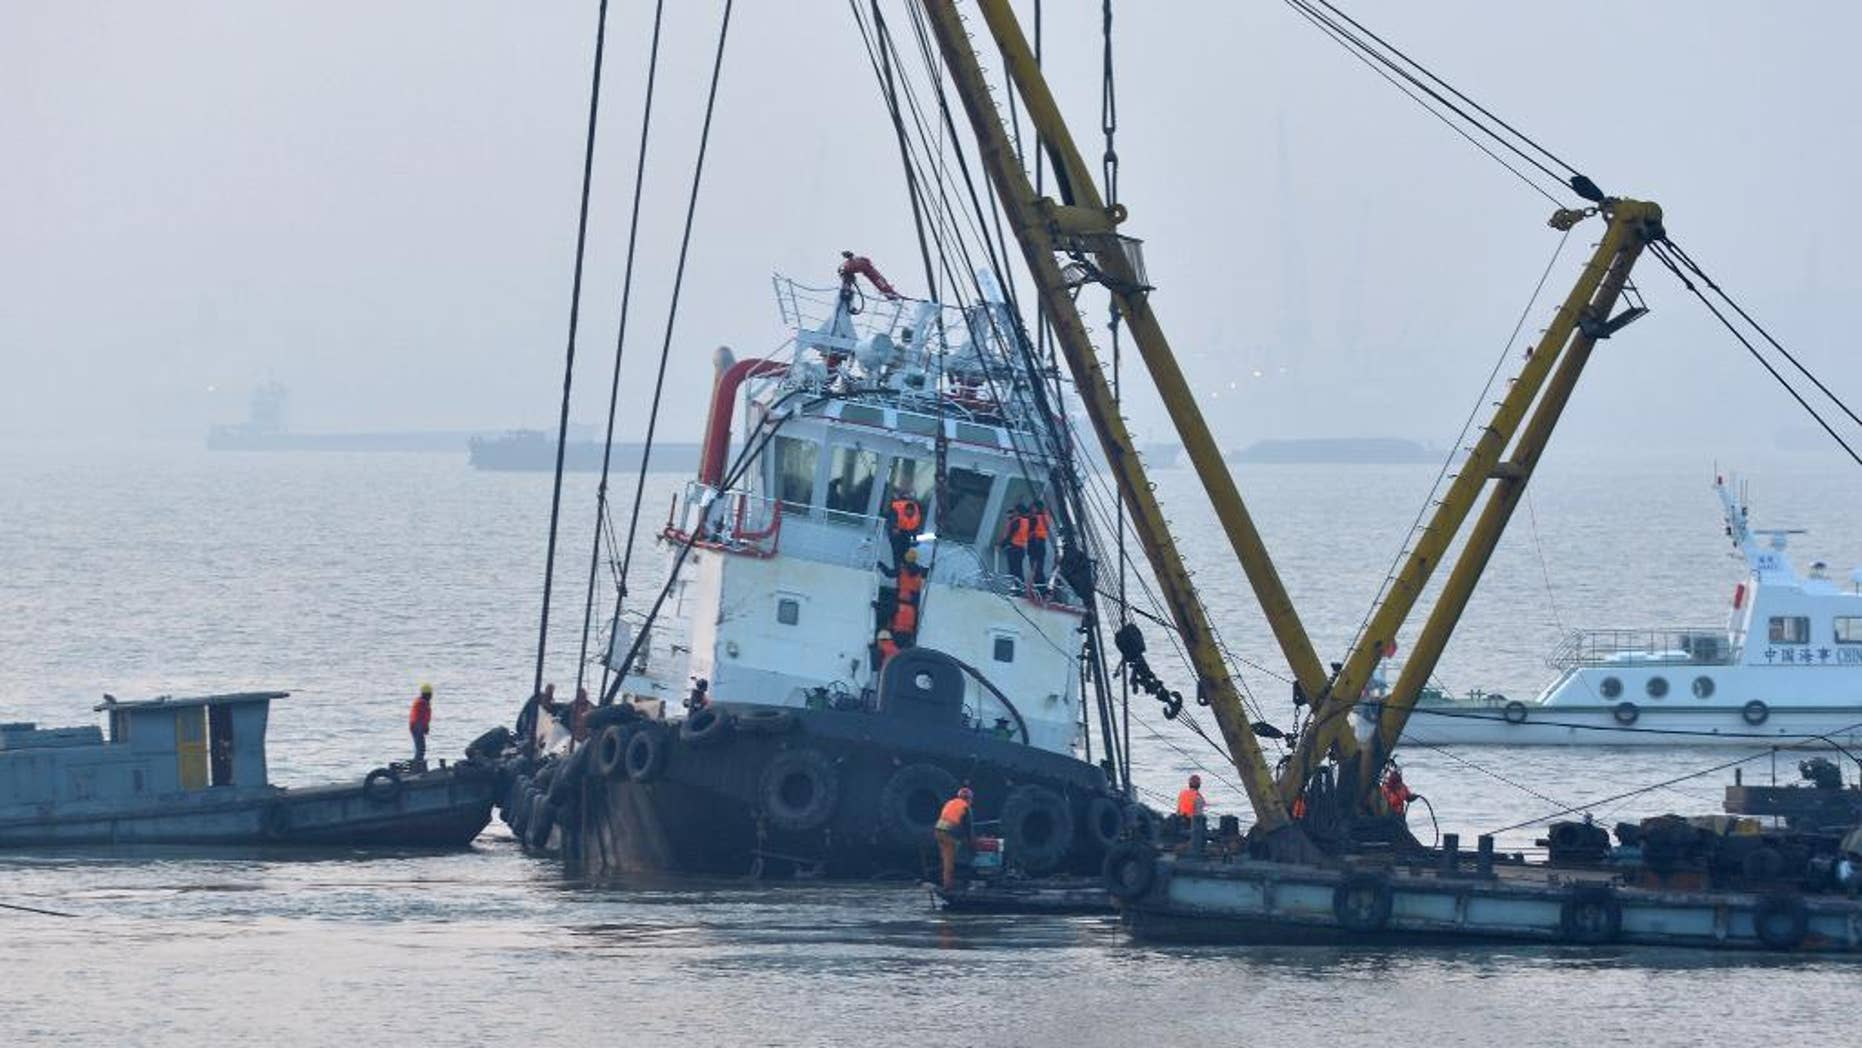 """In this photo released by China's Xinhua News Agency, rescuers approach the lifted wreckage of capsized tug boat """"Wanshenzhou 67"""" on the Yangtze River near Jingjiang, east China's Jiangsu Province,  Saturday, Jan. 17, 2015. Authorities confirmed 21 people dead in the capsizing of the tugboat with an international team on a test voyage in eastern China, after rescuers dragged the overturned vessel to shallow waters and scoured it Saturday. (AP Photo/Xinhua, Shen Peng) NO SALES"""